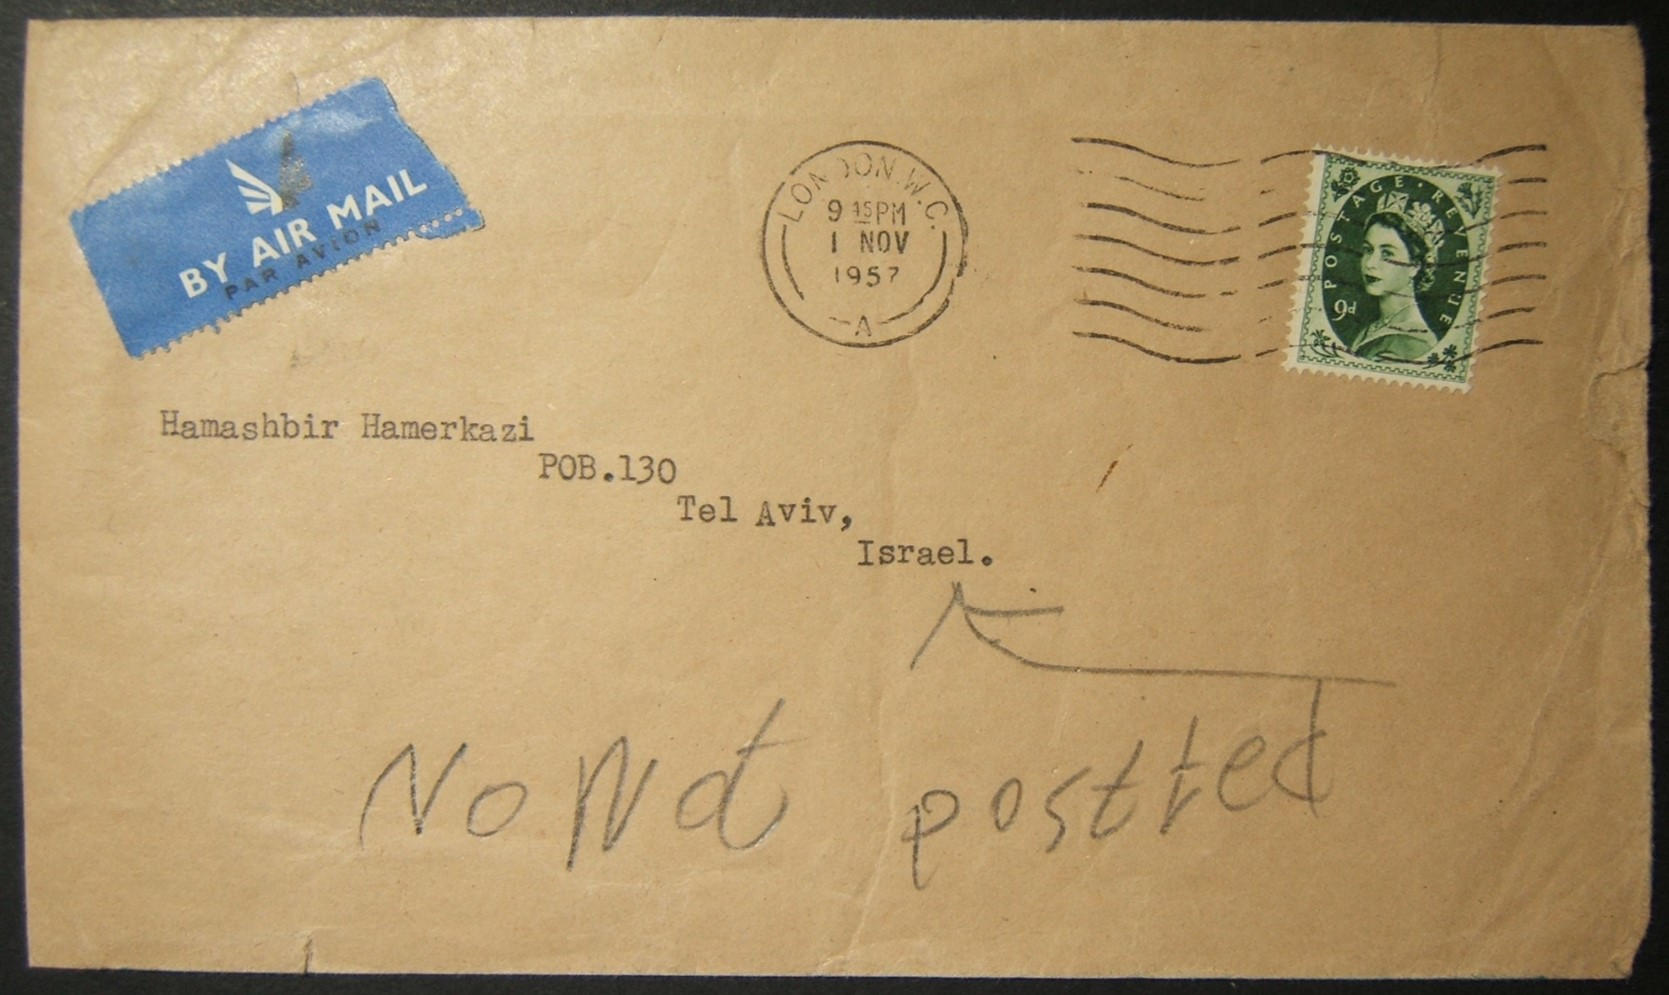 11/1957 British airmail to TEL AVIV mis-routed via Iraq; refused service & returned